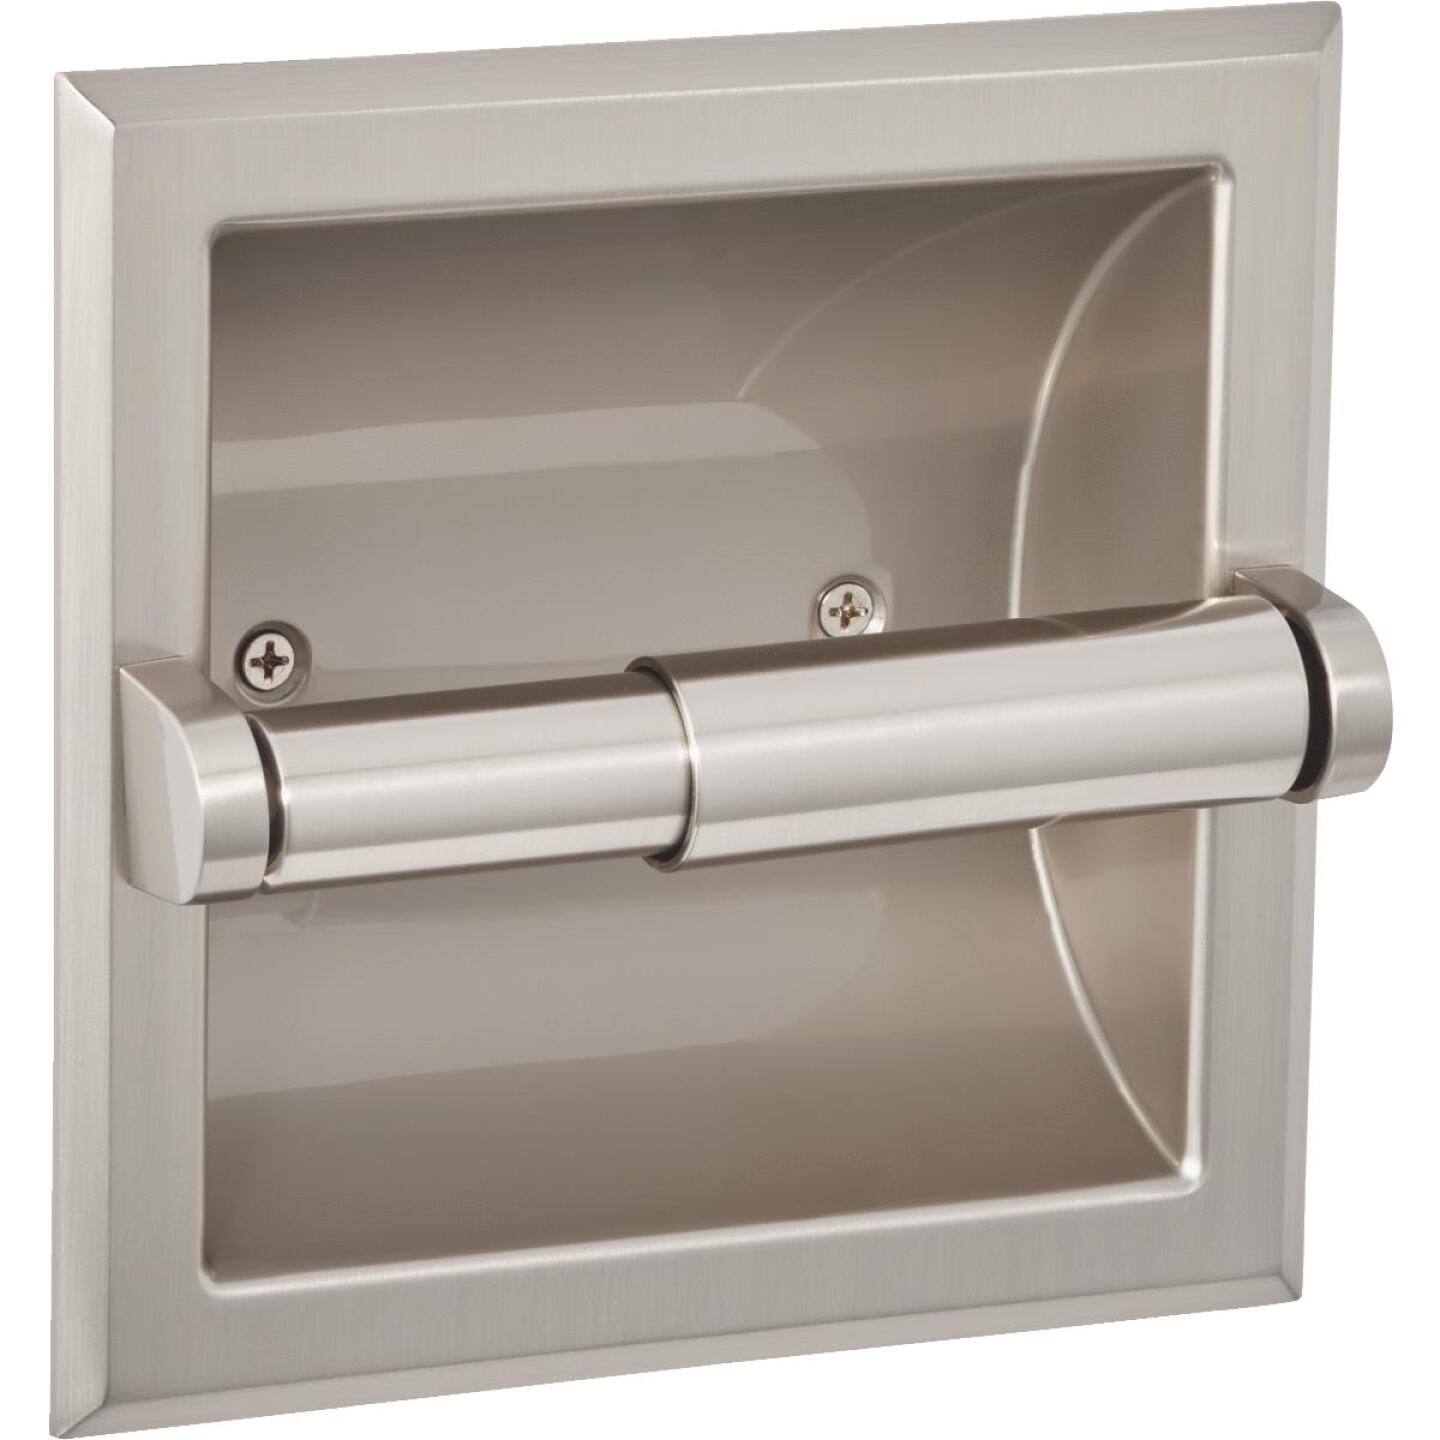 Home Impressions Aria Brushed Nickel Recessed Toilet Paper Holder Image 1